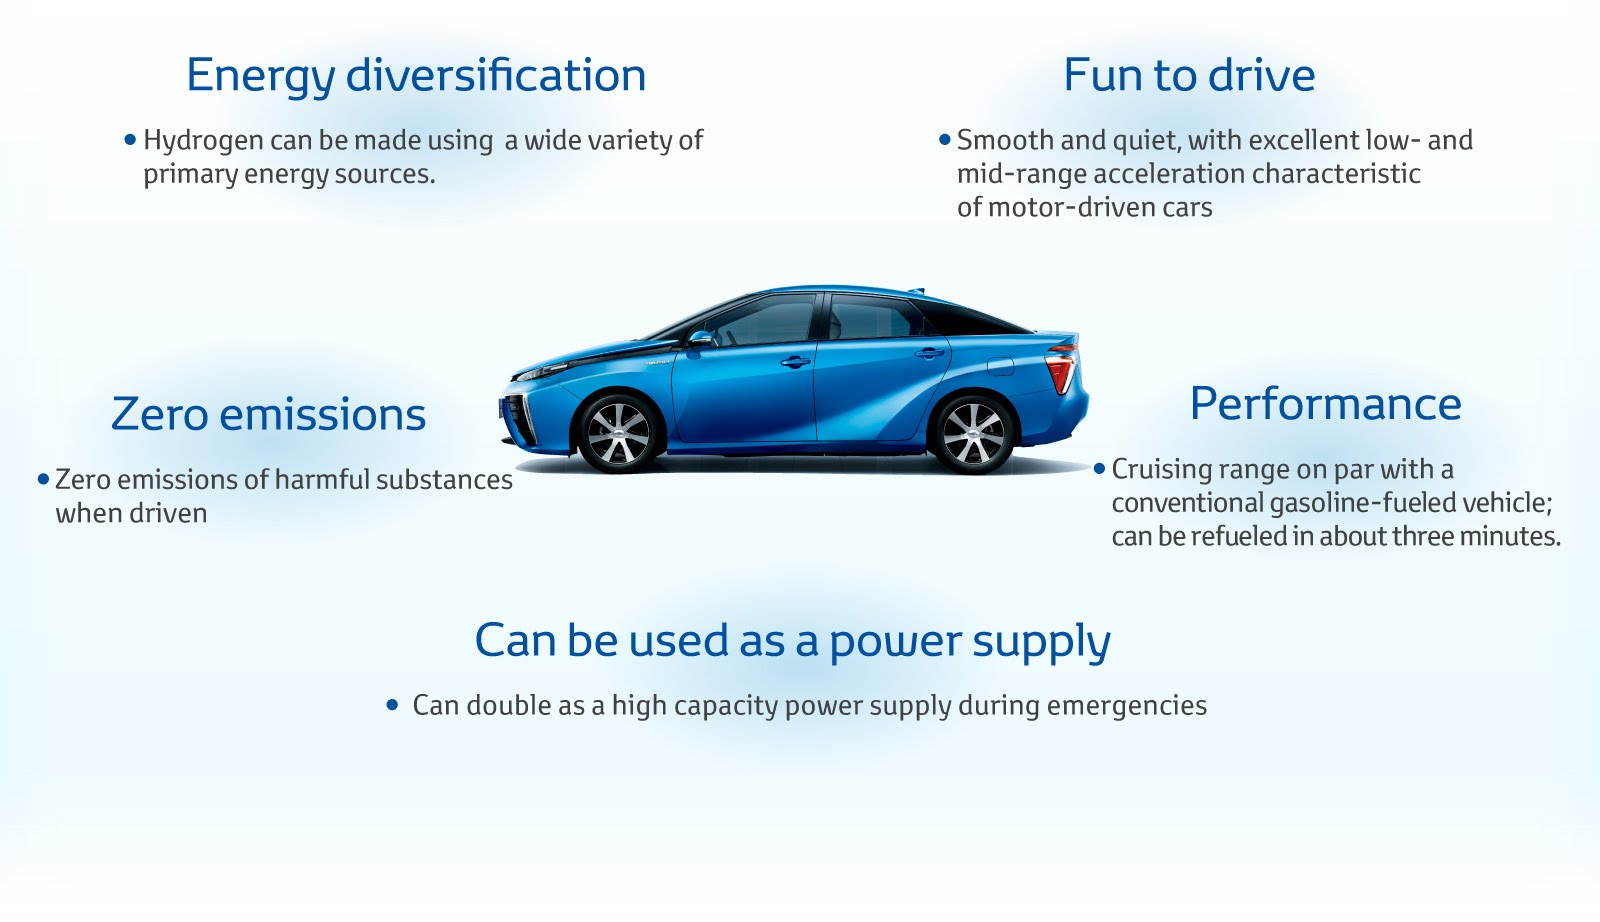 Toyota and FuelCell Energy Plan Massive Hydrogen Fuel Project